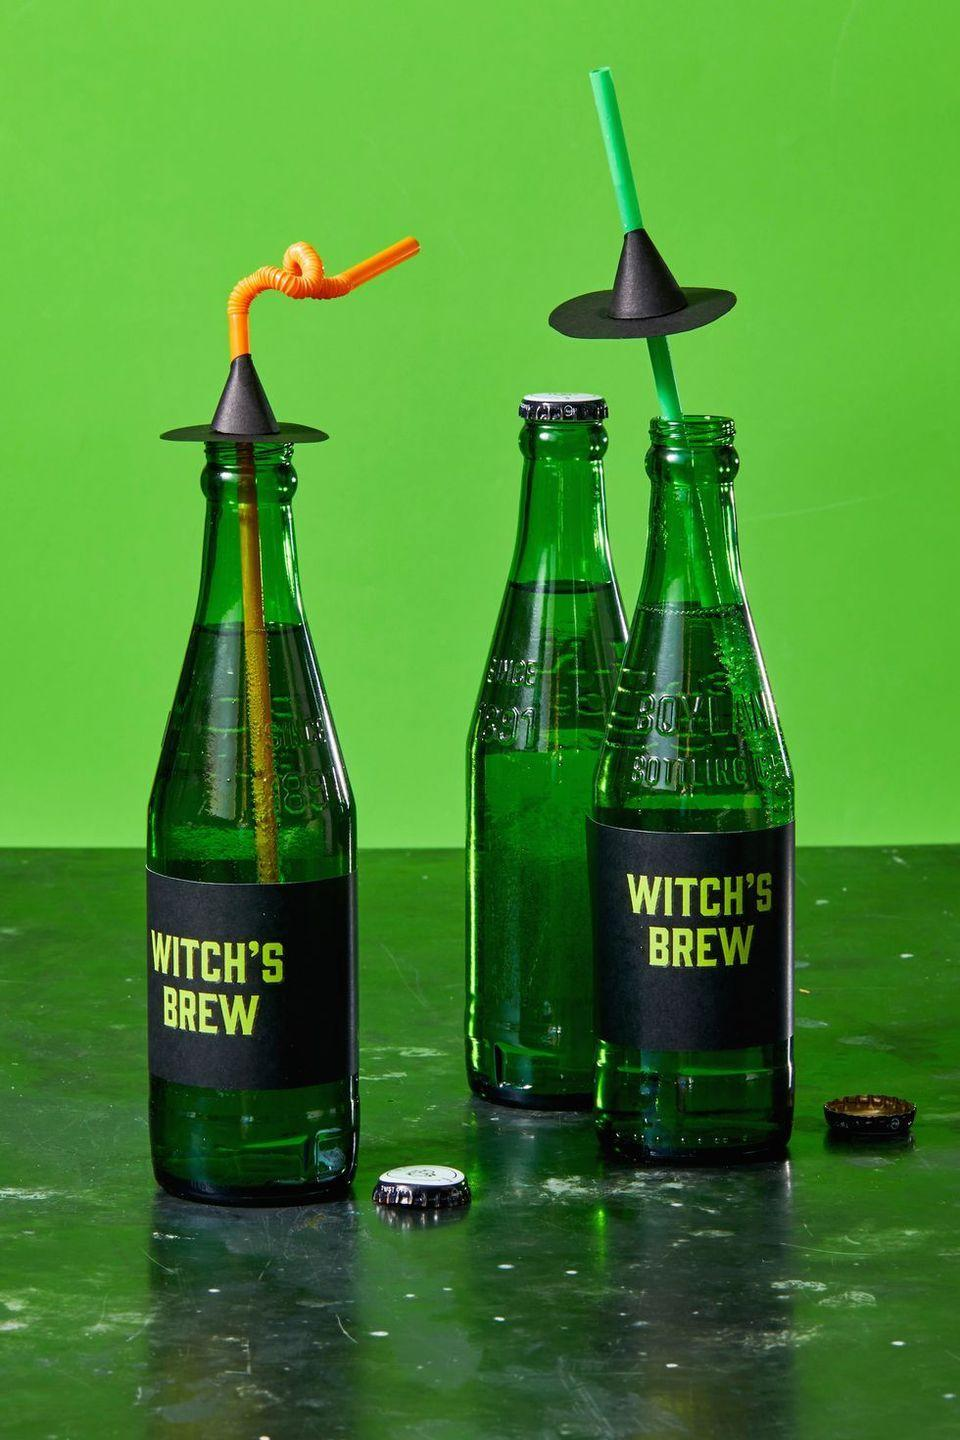 """<p>Make your soda or beer bottles fit for the party by taping our <strong><a href=""""https://hmg-prod.s3.amazonaws.com/files/ghkhalloween-witchesbrewwrappers-1564587124.pdf?tag=syn-yahoo-20&ascsubtag=%5Bartid%7C10055.g.421%5Bsrc%7Cyahoo-us"""" rel=""""nofollow noopener"""" target=""""_blank"""" data-ylk=""""slk:Witch's Brew bottle wrap template"""" class=""""link rapid-noclick-resp"""">Witch's Brew bottle wrap template</a> </strong>around the center of the bottle. If you want to go the extra mile, DIY witch hat straws: To make, cut two 3"""" circles out of black paper and punch a hole in the center of one. Slide a straw through the hole. Cut the other circle in half and roll to create a cone around the straw, glueing or taping in place. Glue or tape the cone to the paper circle to make it look like a witch hat.</p><p><strong>RELATED: </strong><a href=""""https://www.goodhousekeeping.com/holidays/halloween-ideas/g33796718/quarantine-halloween-ideas/"""" rel=""""nofollow noopener"""" target=""""_blank"""" data-ylk=""""slk:15 Fun Quarantine Halloween Ideas for a Festive, Socially Distanced Holiday"""" class=""""link rapid-noclick-resp"""">15 Fun Quarantine Halloween Ideas for a Festive, Socially Distanced Holiday</a></p>"""